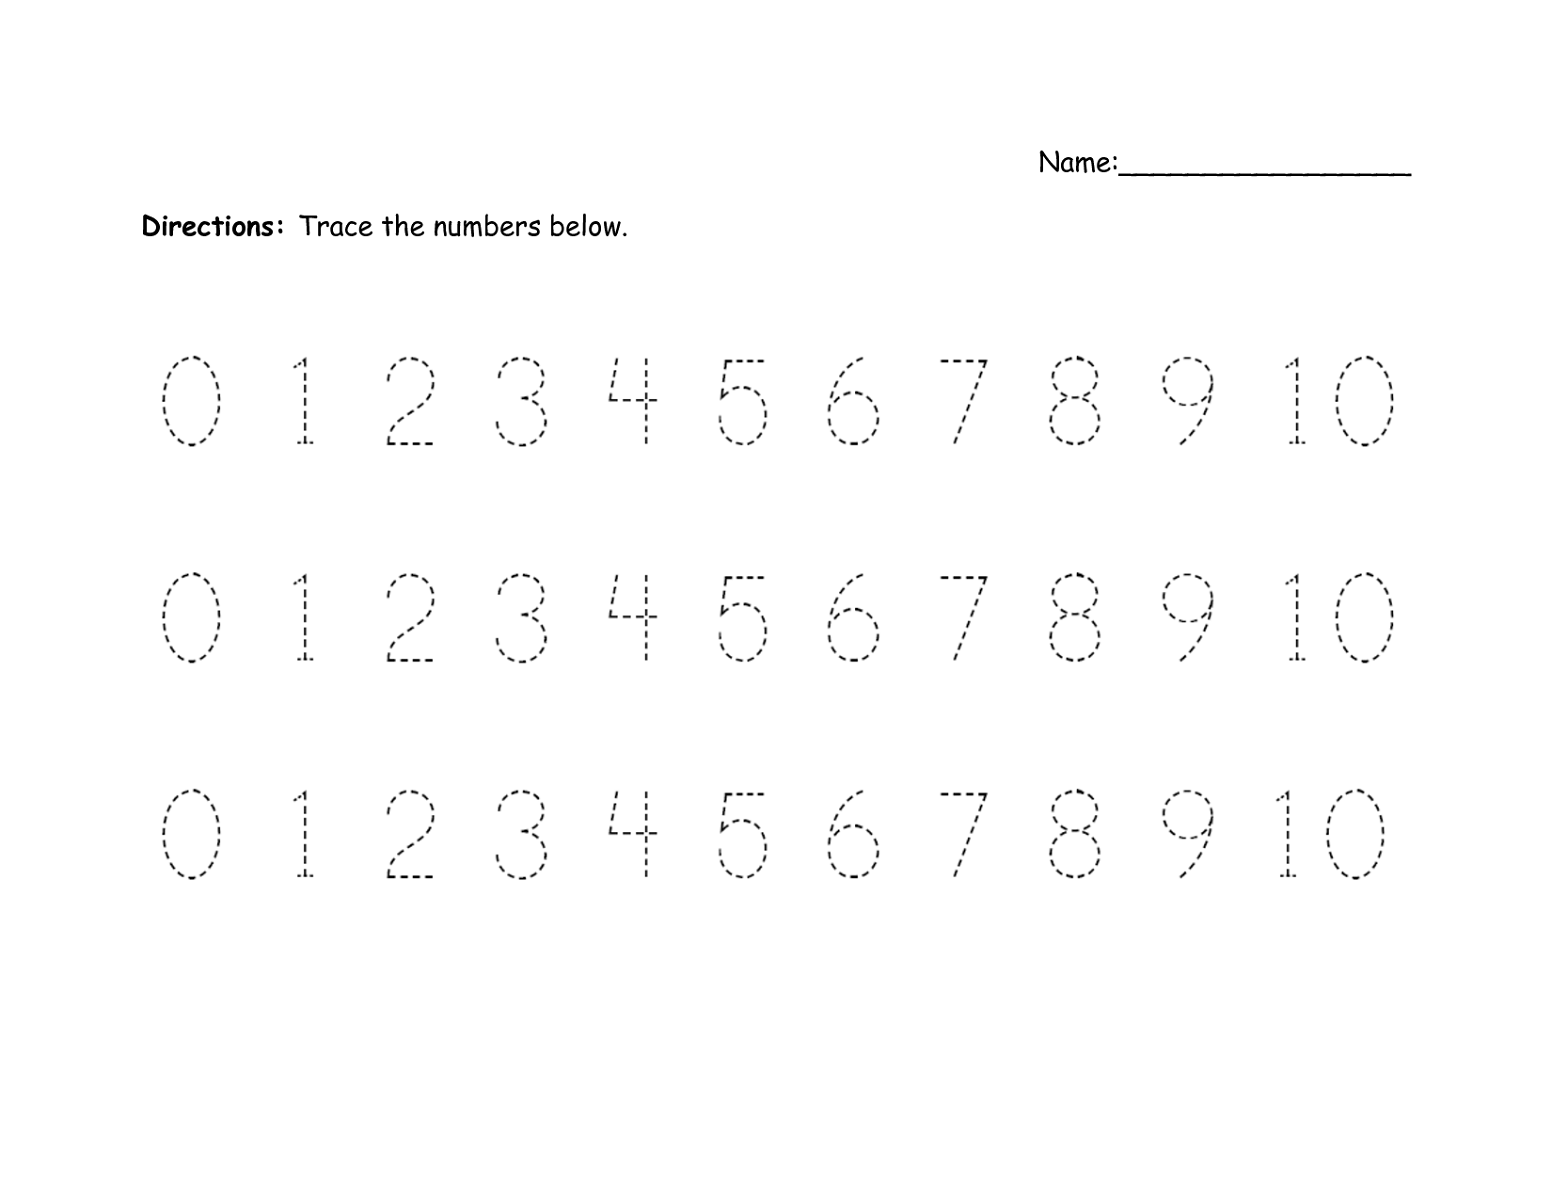 Alphabet Tracer Pages For Kids Writing Numbers Tracing Worksheets Preschool Kids Math Worksheets [ 1200 x 1552 Pixel ]